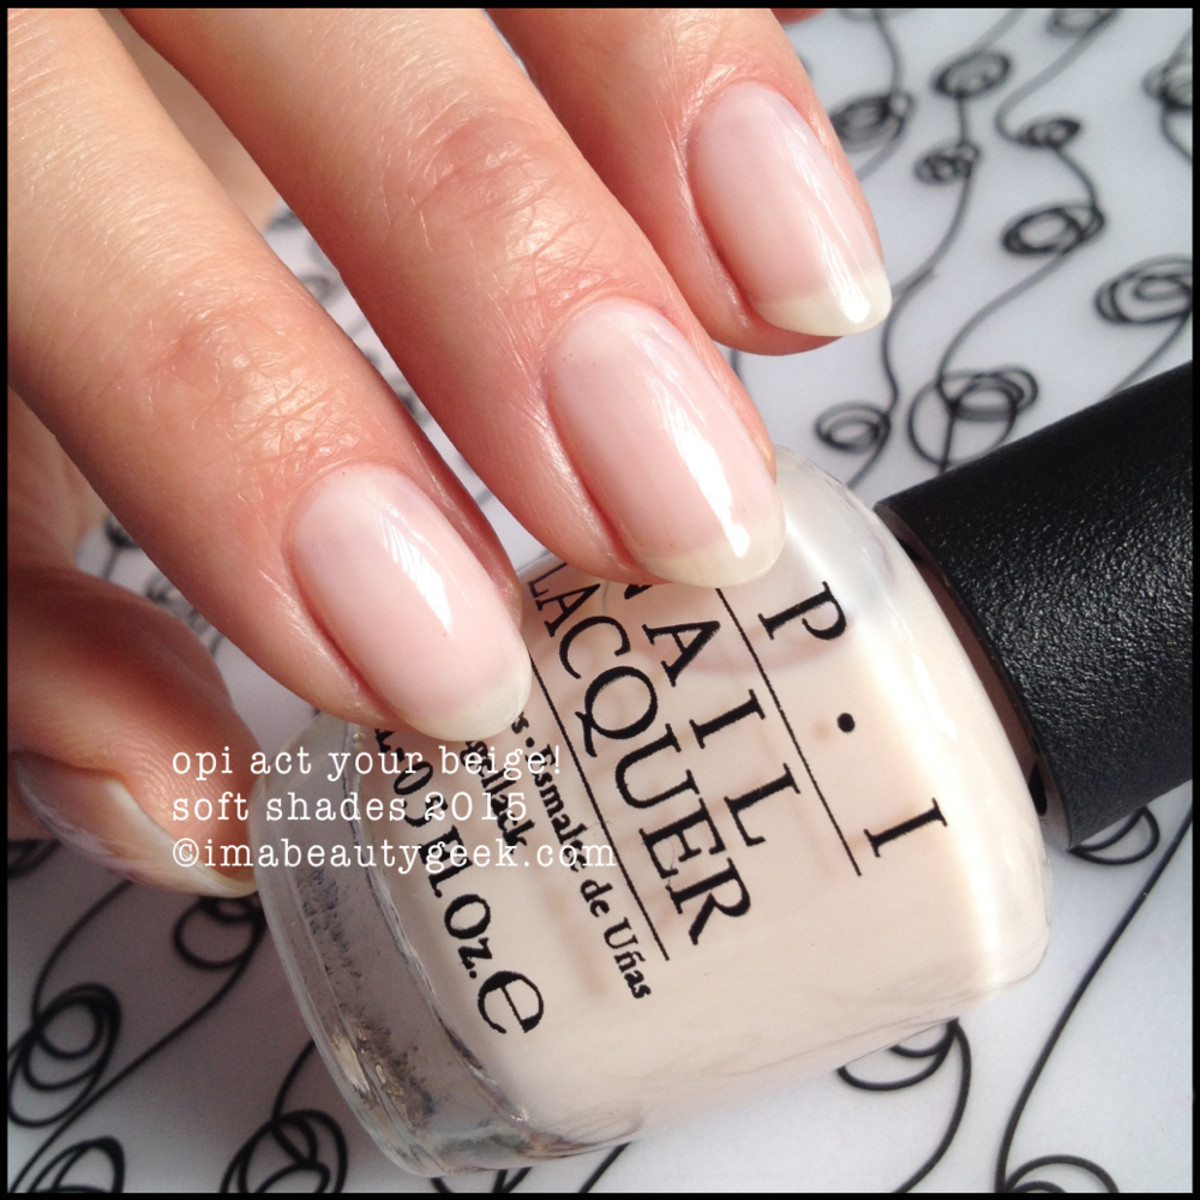 OPI Soft Shades 2015 Act Your Beige!